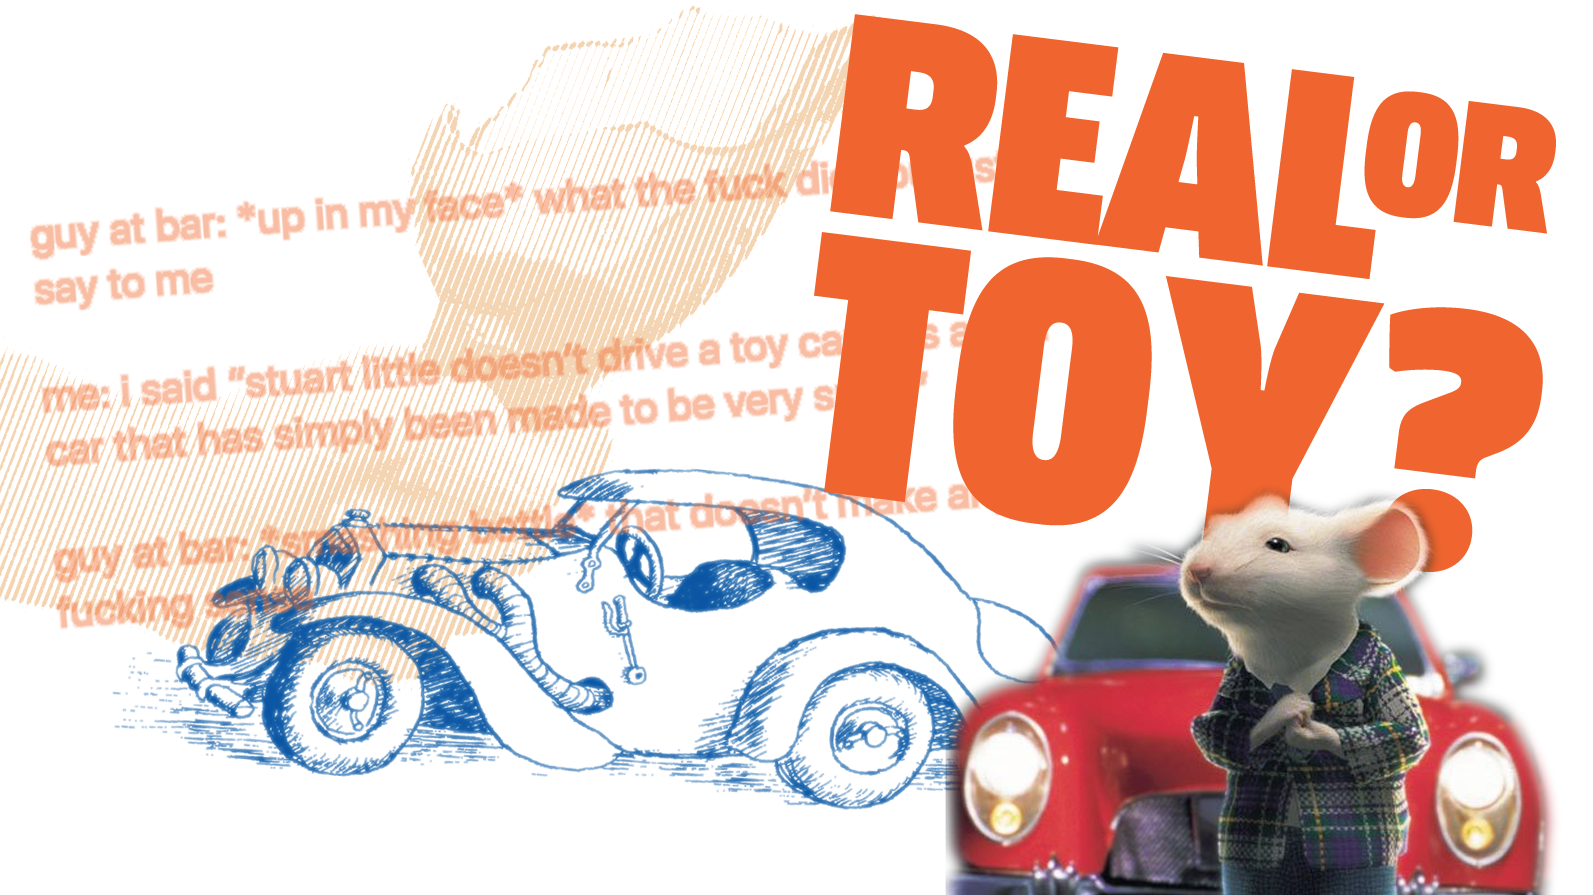 Let's Finally Get To The Bottom Of This: Does Stuart Little Drive A Toy Car Or A Miniature Actual Car?